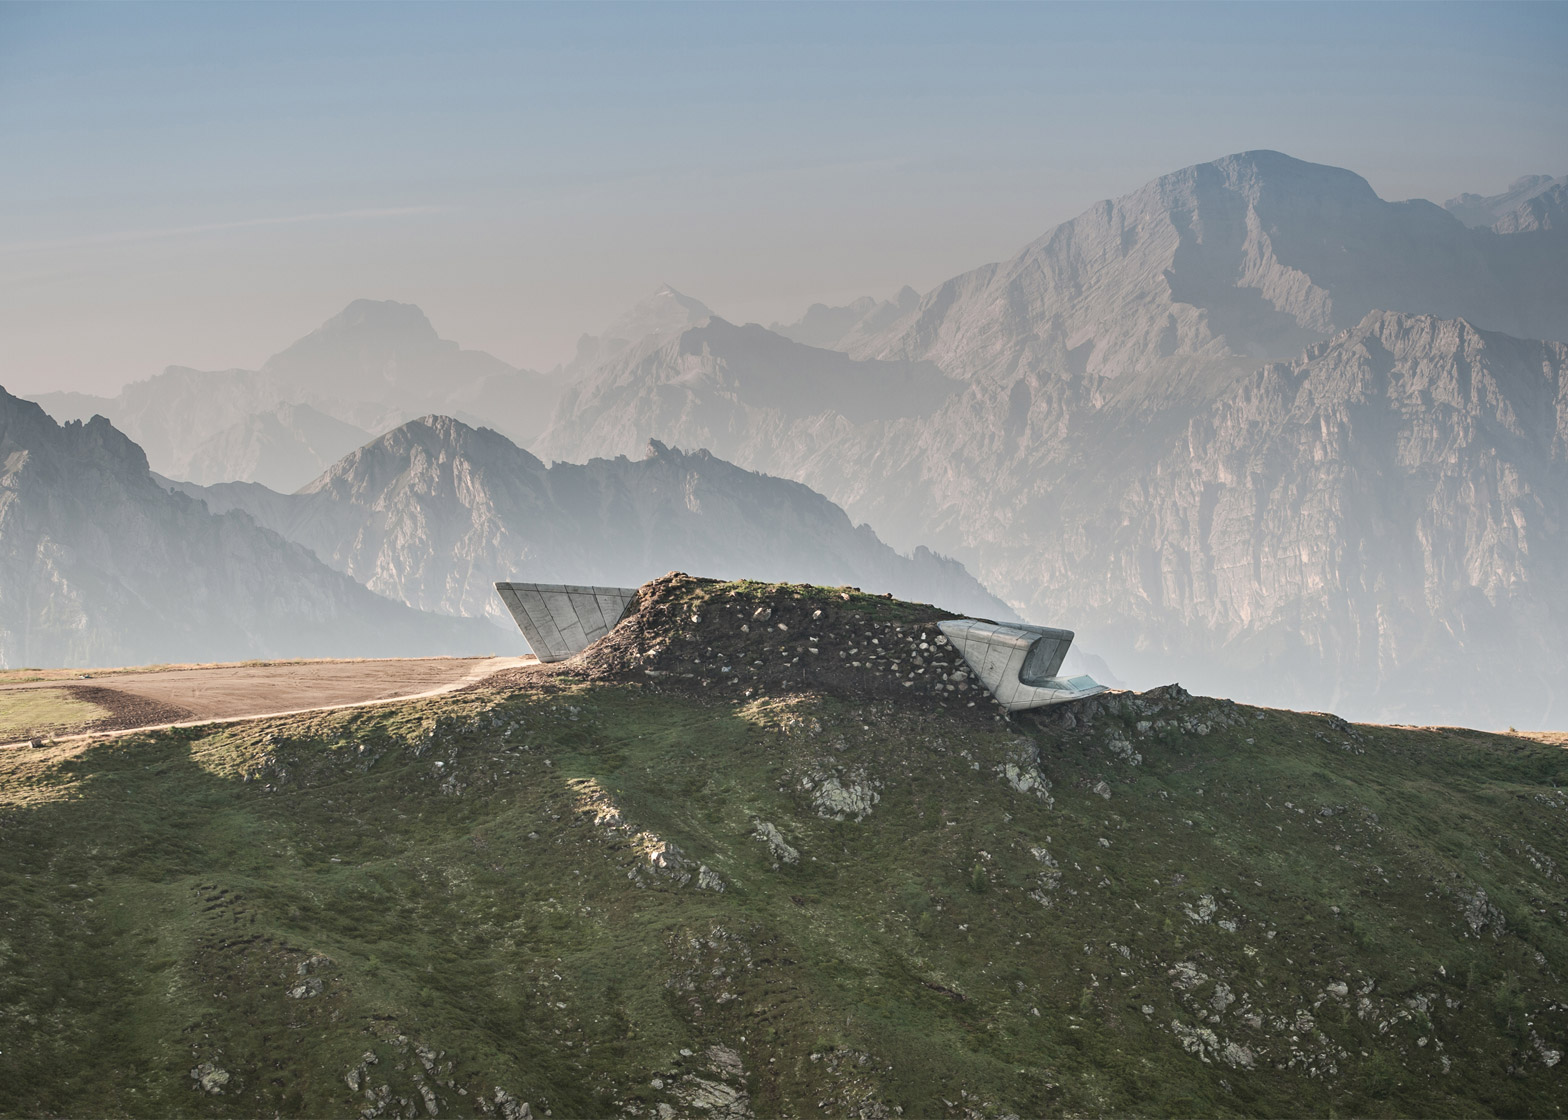 Messner Mountain Museum, Corones, Kronplatz, South Tyrol, Italy, by Zaha Hadid Architects